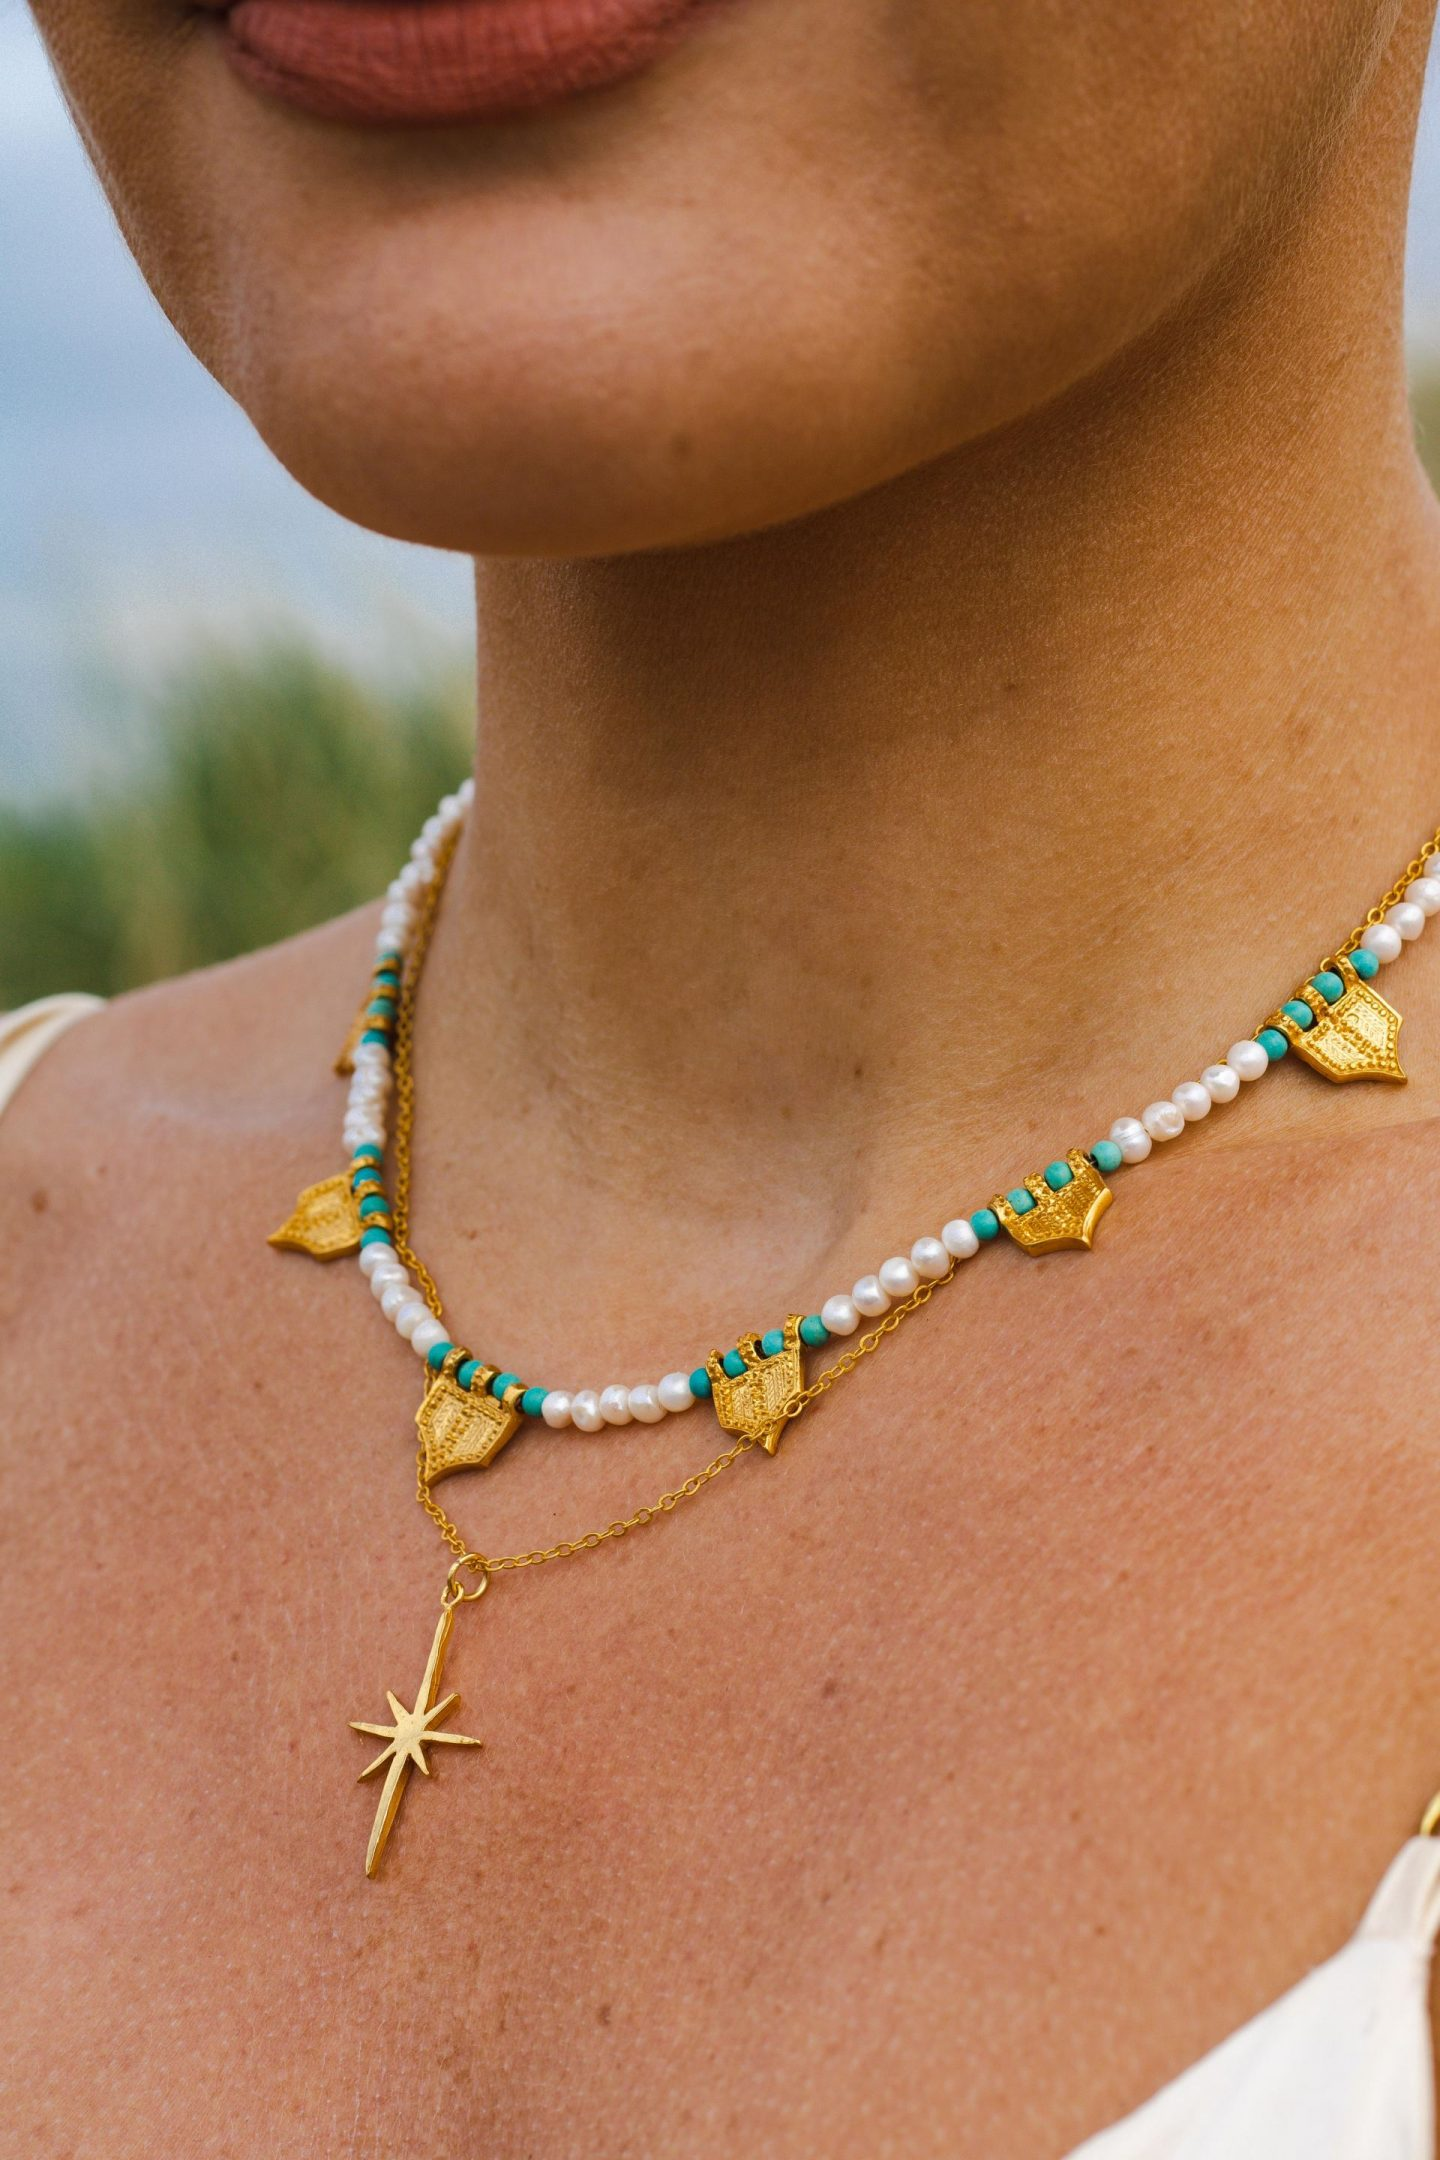 Ottoman Hands Jewellery. Gold Riva Pearl and Turquoise Necklace, Gold Star Necklace